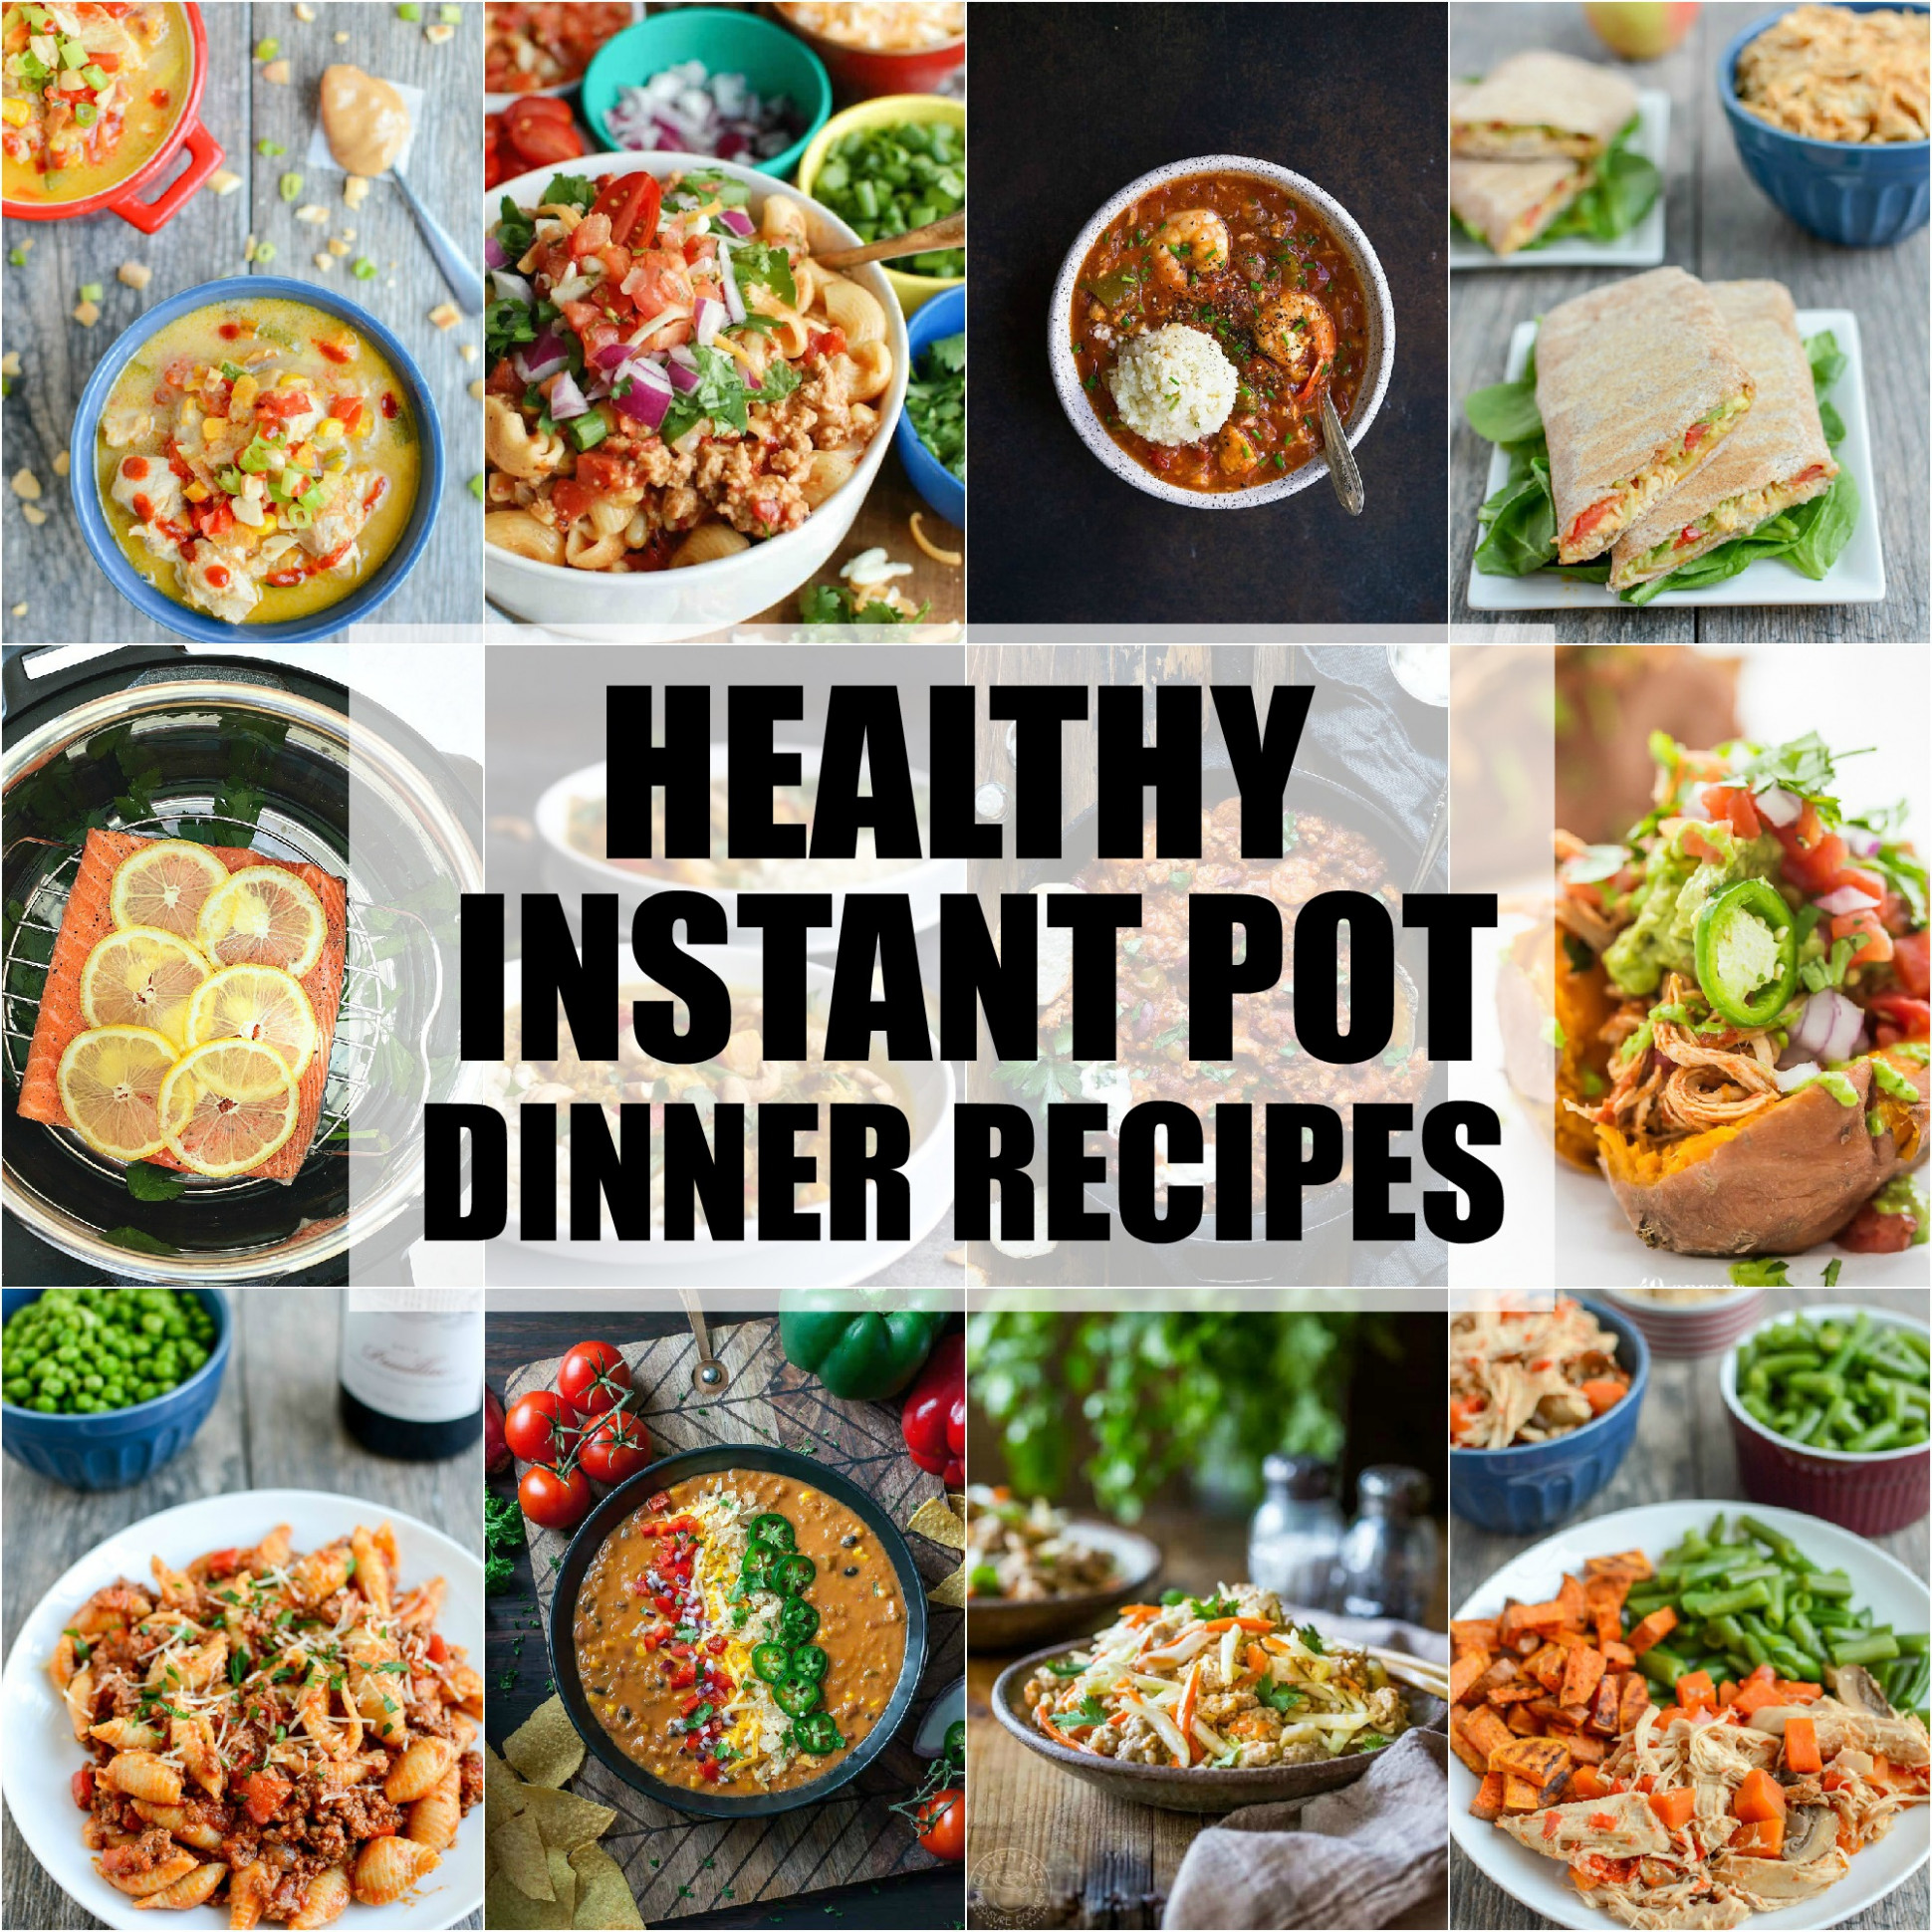 Healthy Instant Pot Dinner Recipes | The Lean Green Bean - instant pot recipes easy healthy